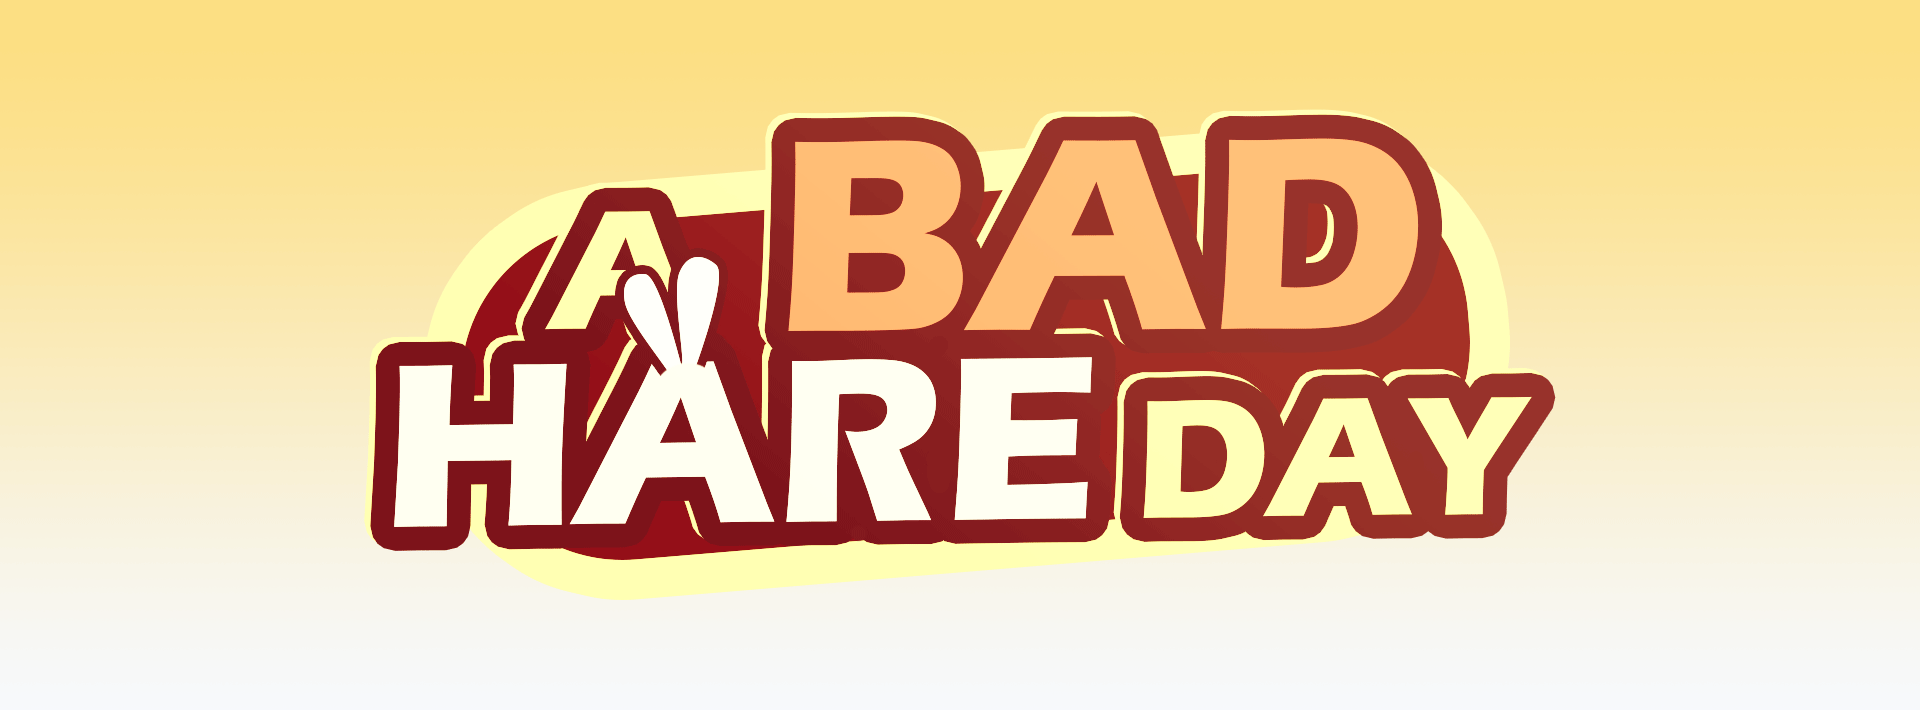 A Bad Hare Day